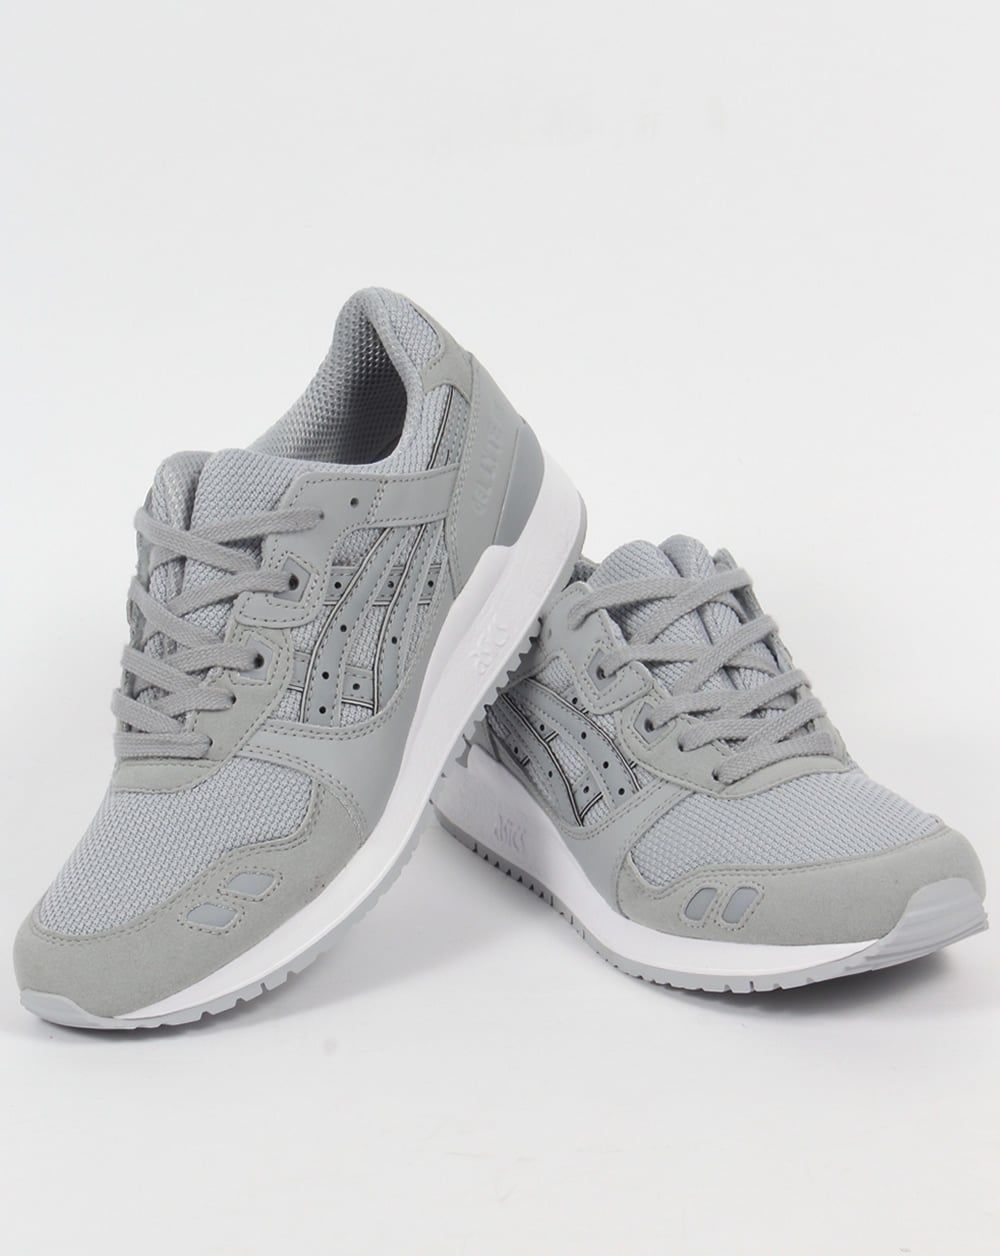 new arrival d15b3 9004c Asics Gel Lyte III Trainers Light Grey